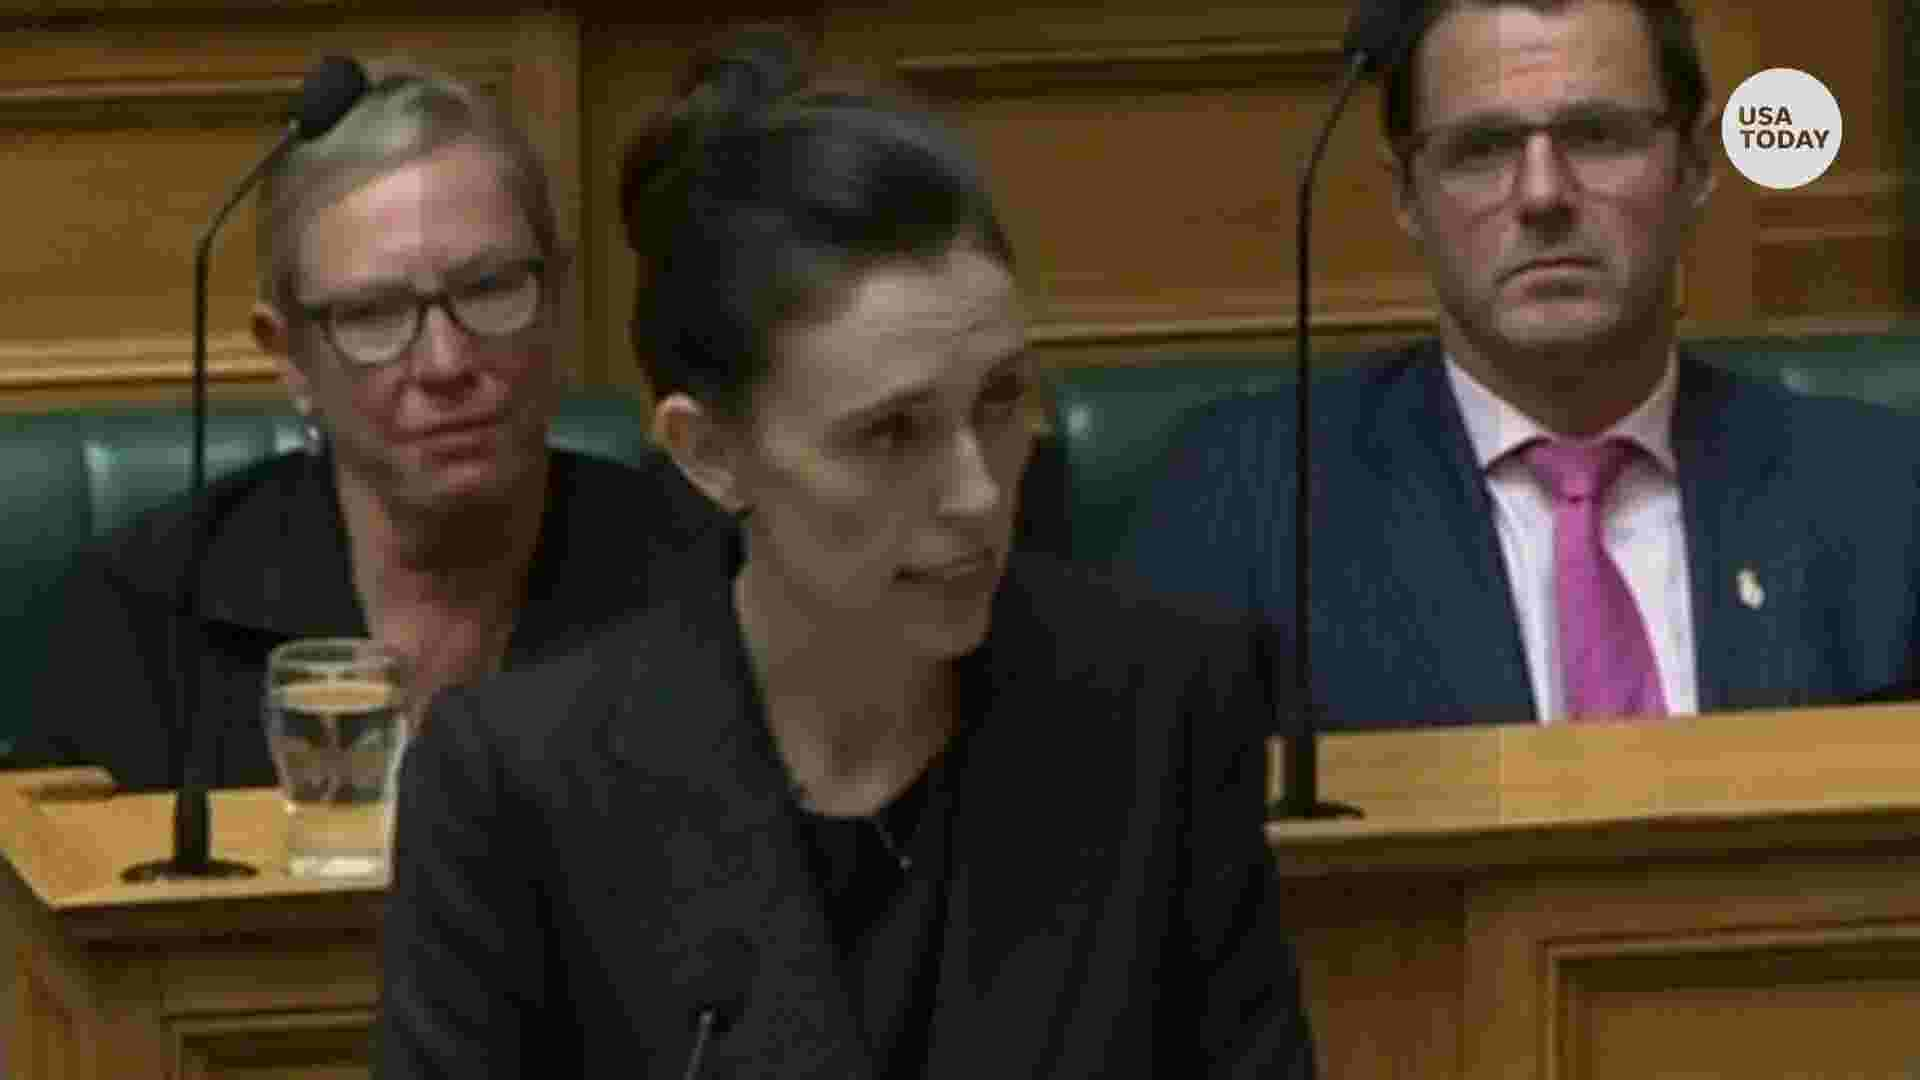 New Zealand's prime minster vows 'never' to say Christchurch suspect's name